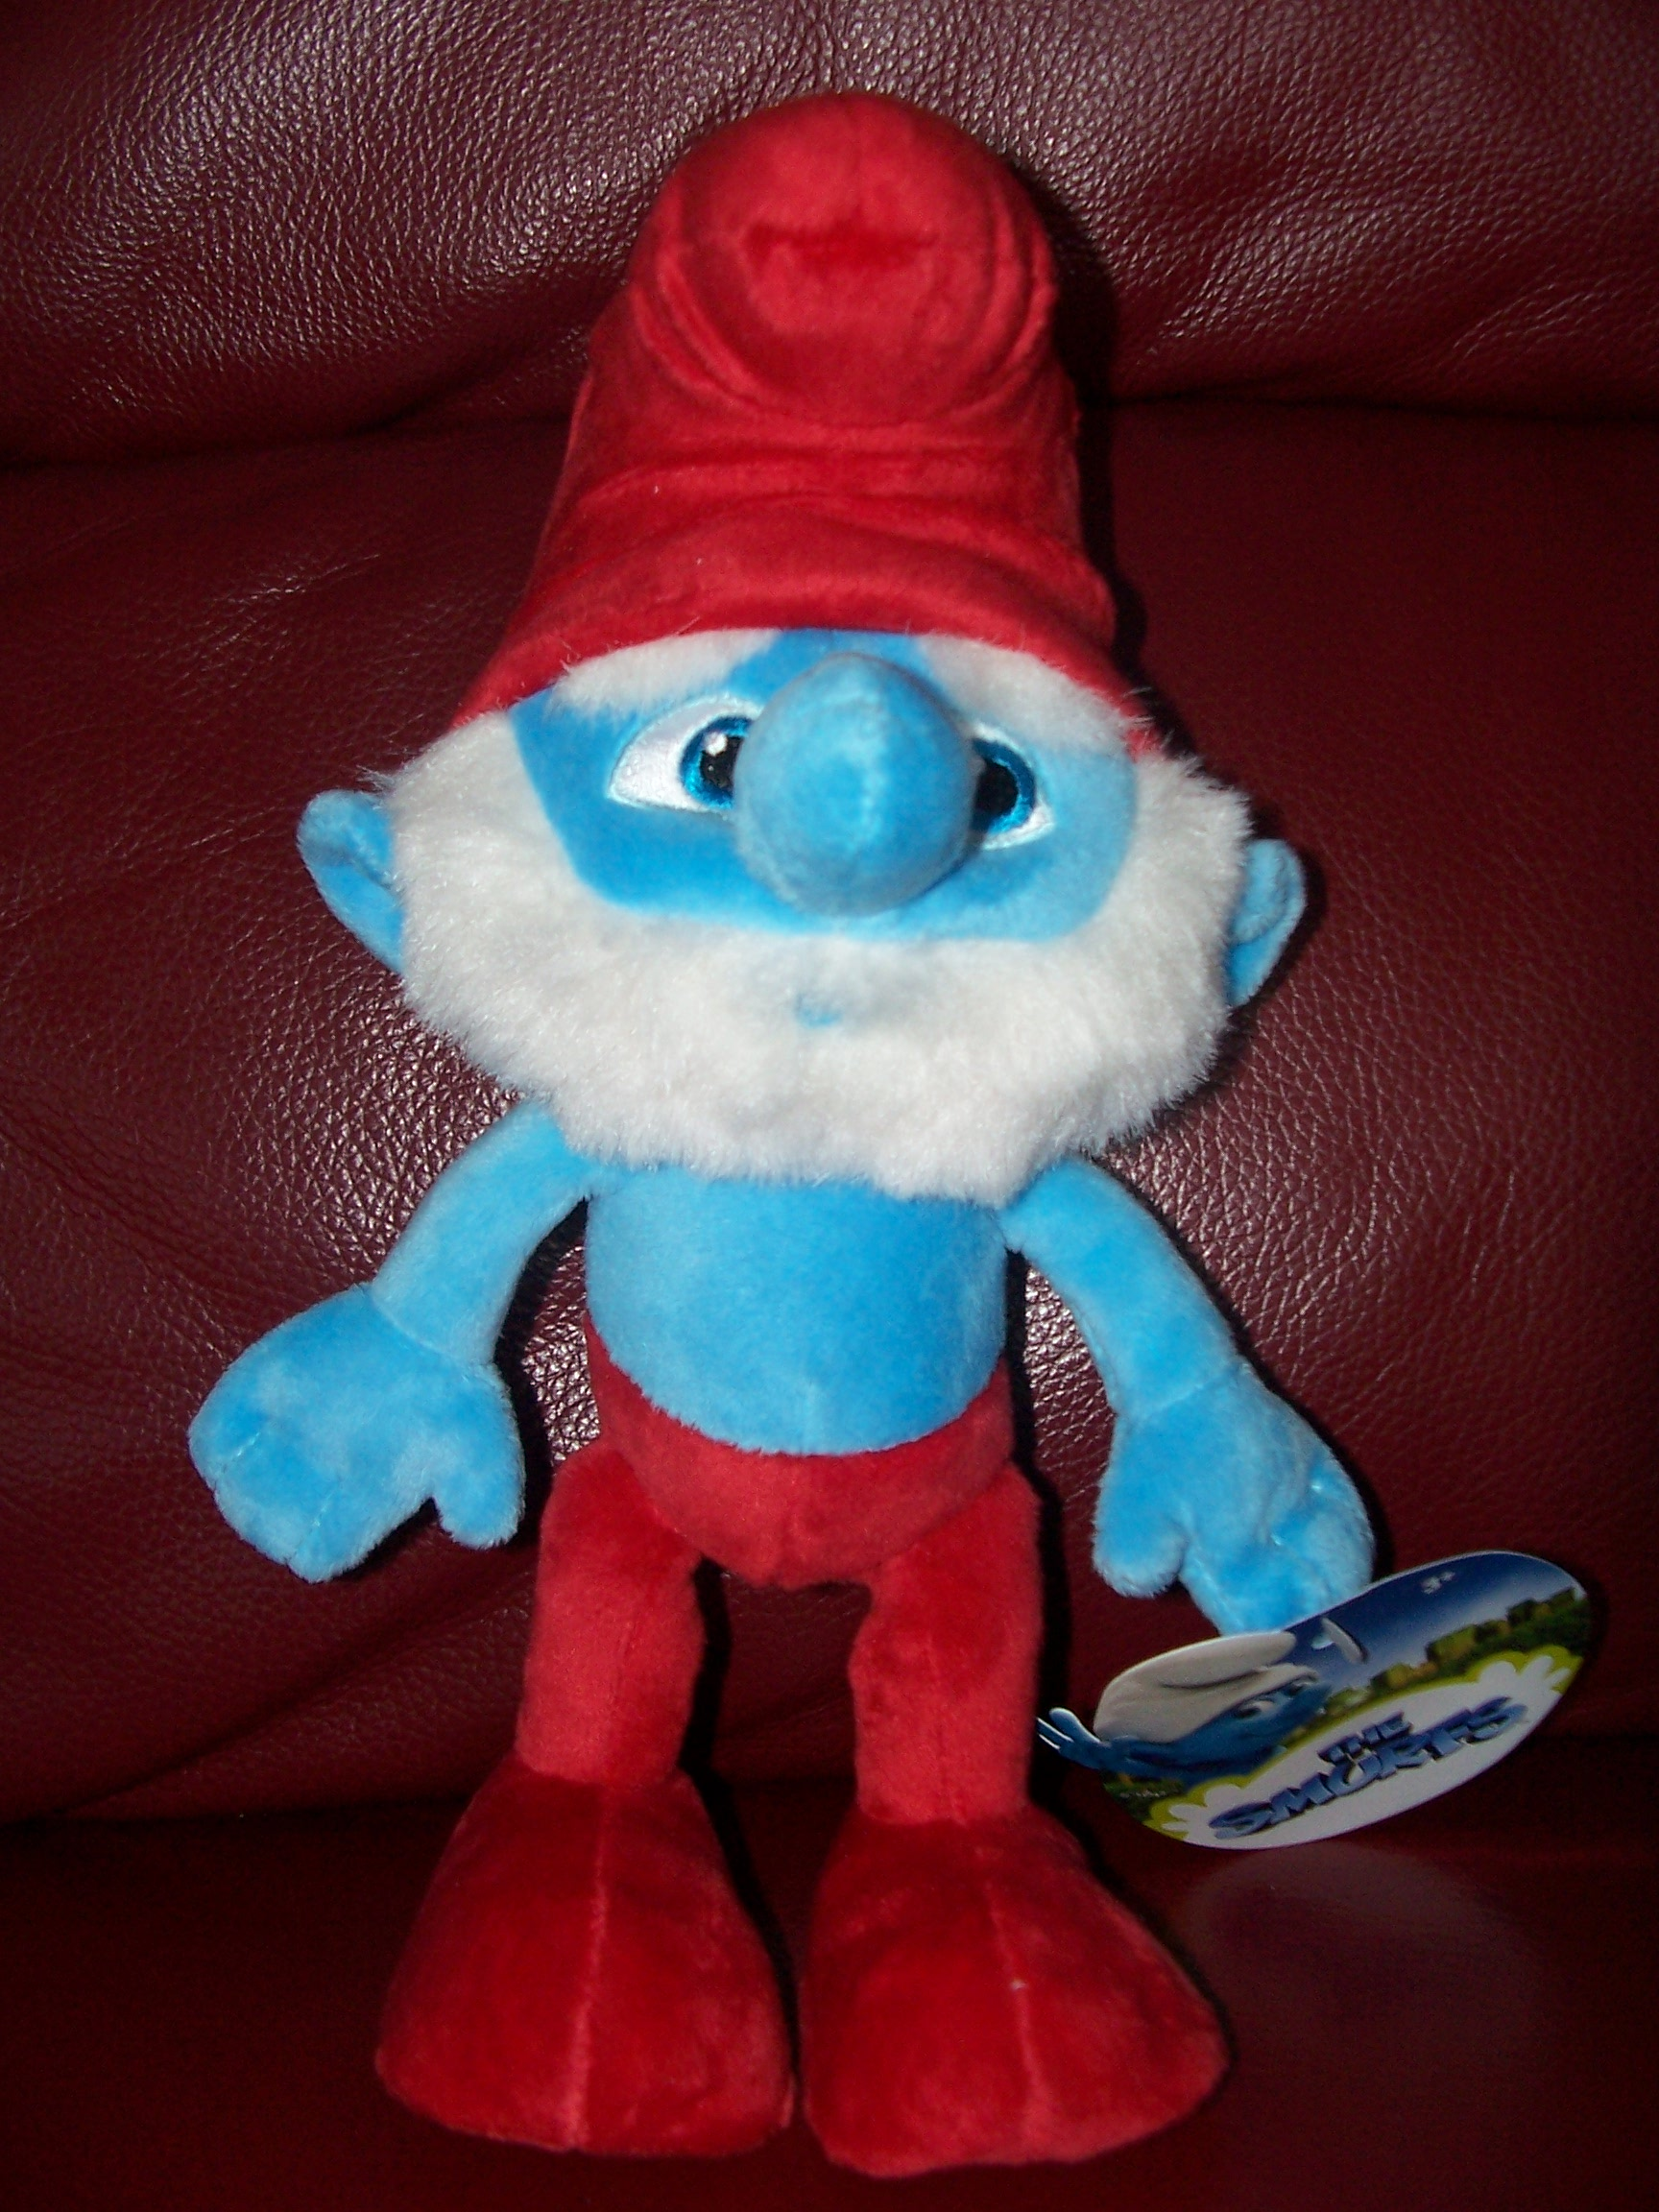 The Smurfs In 3d Toy Range